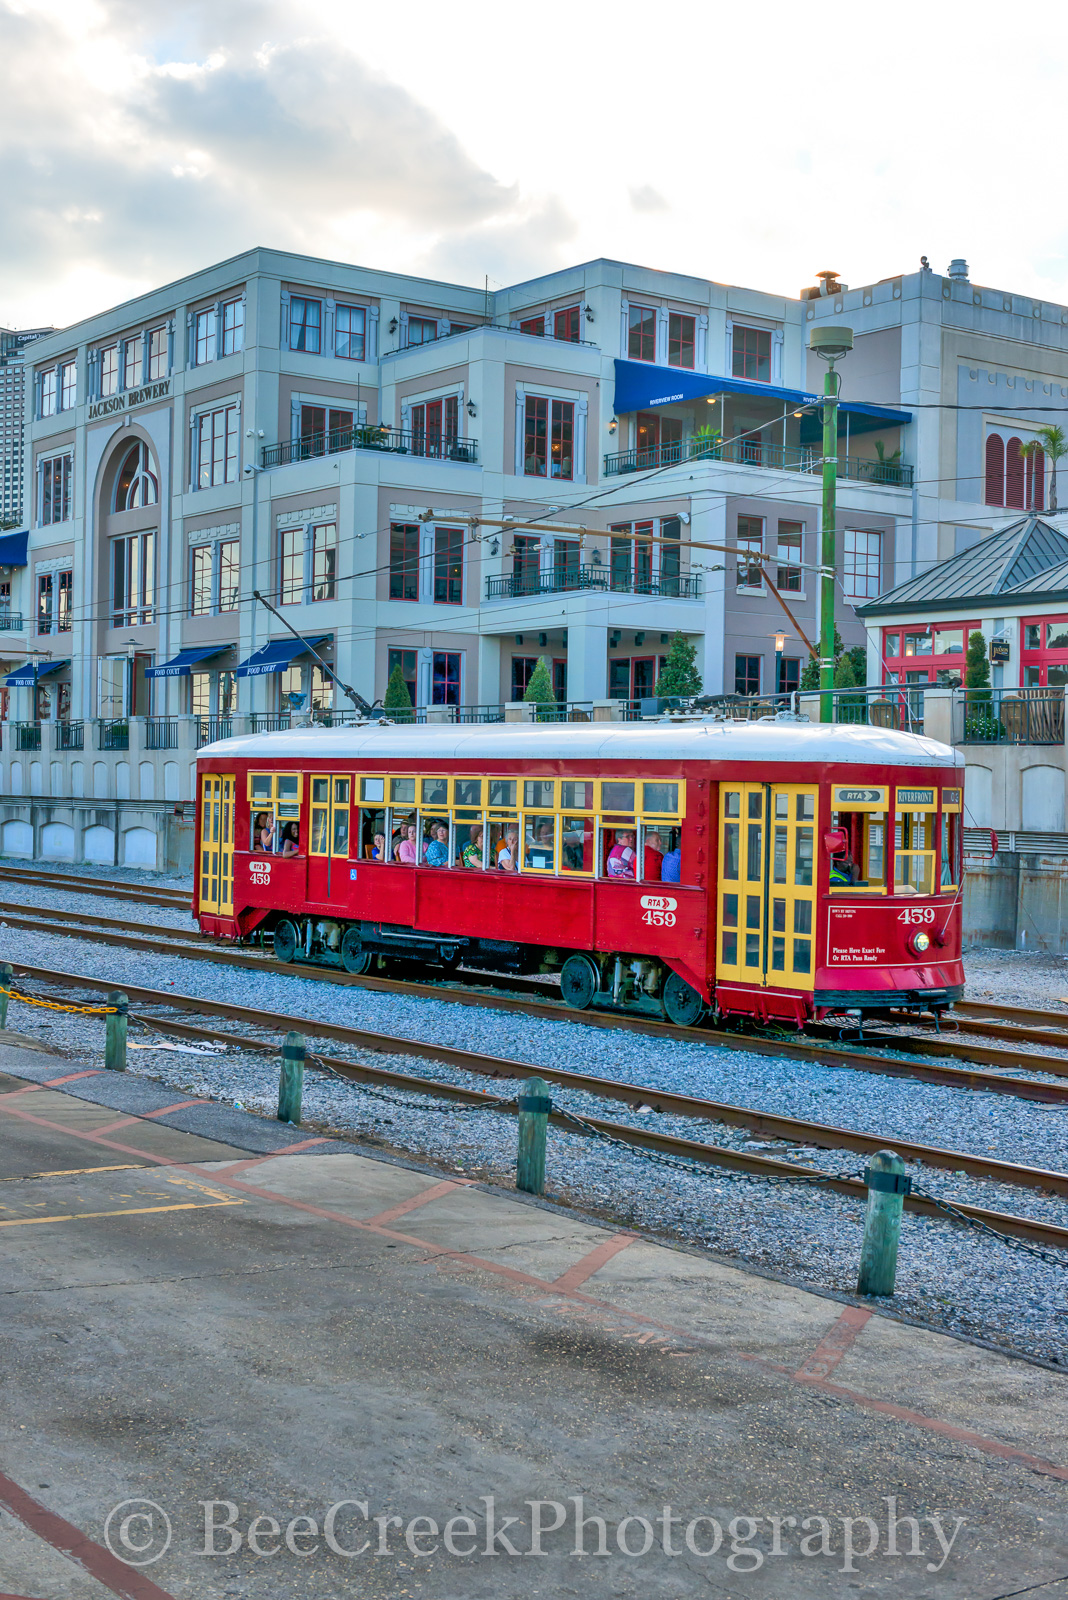 Jackson Brewery, New Orleands, red street car, transist, New Orleans cityscapes, , photo